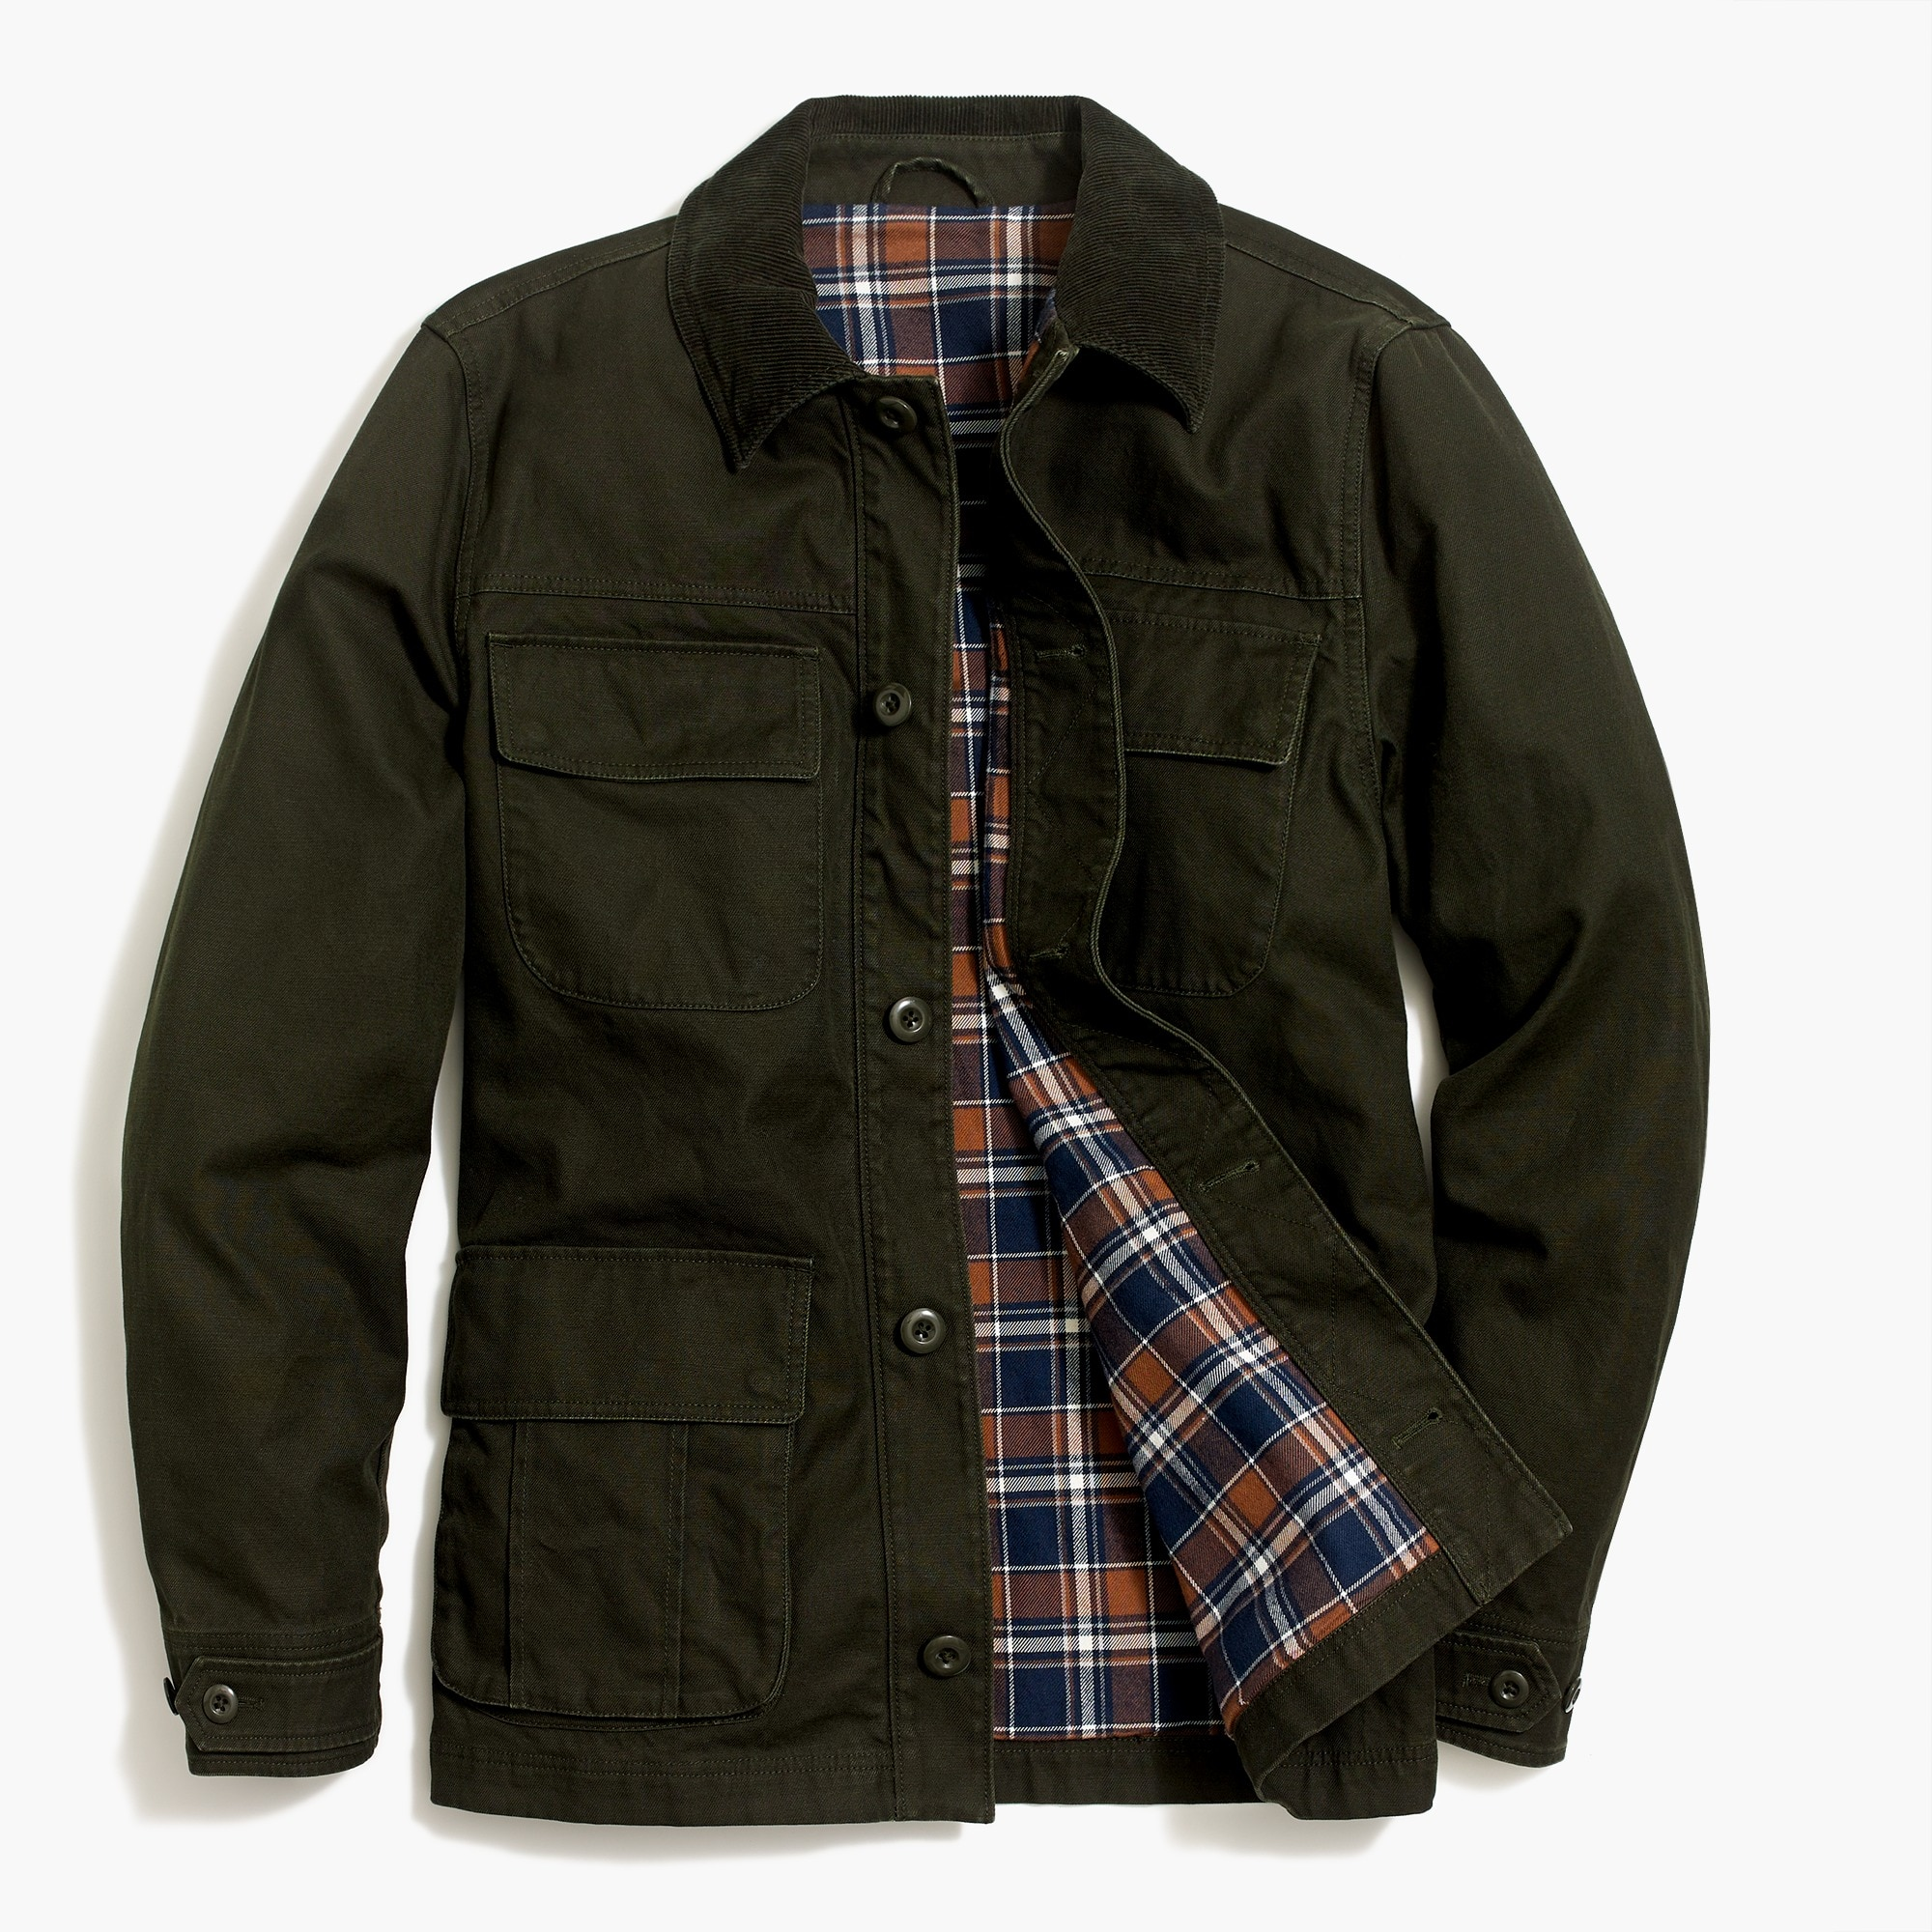 Image 3 for Flannel-lined barn jacket